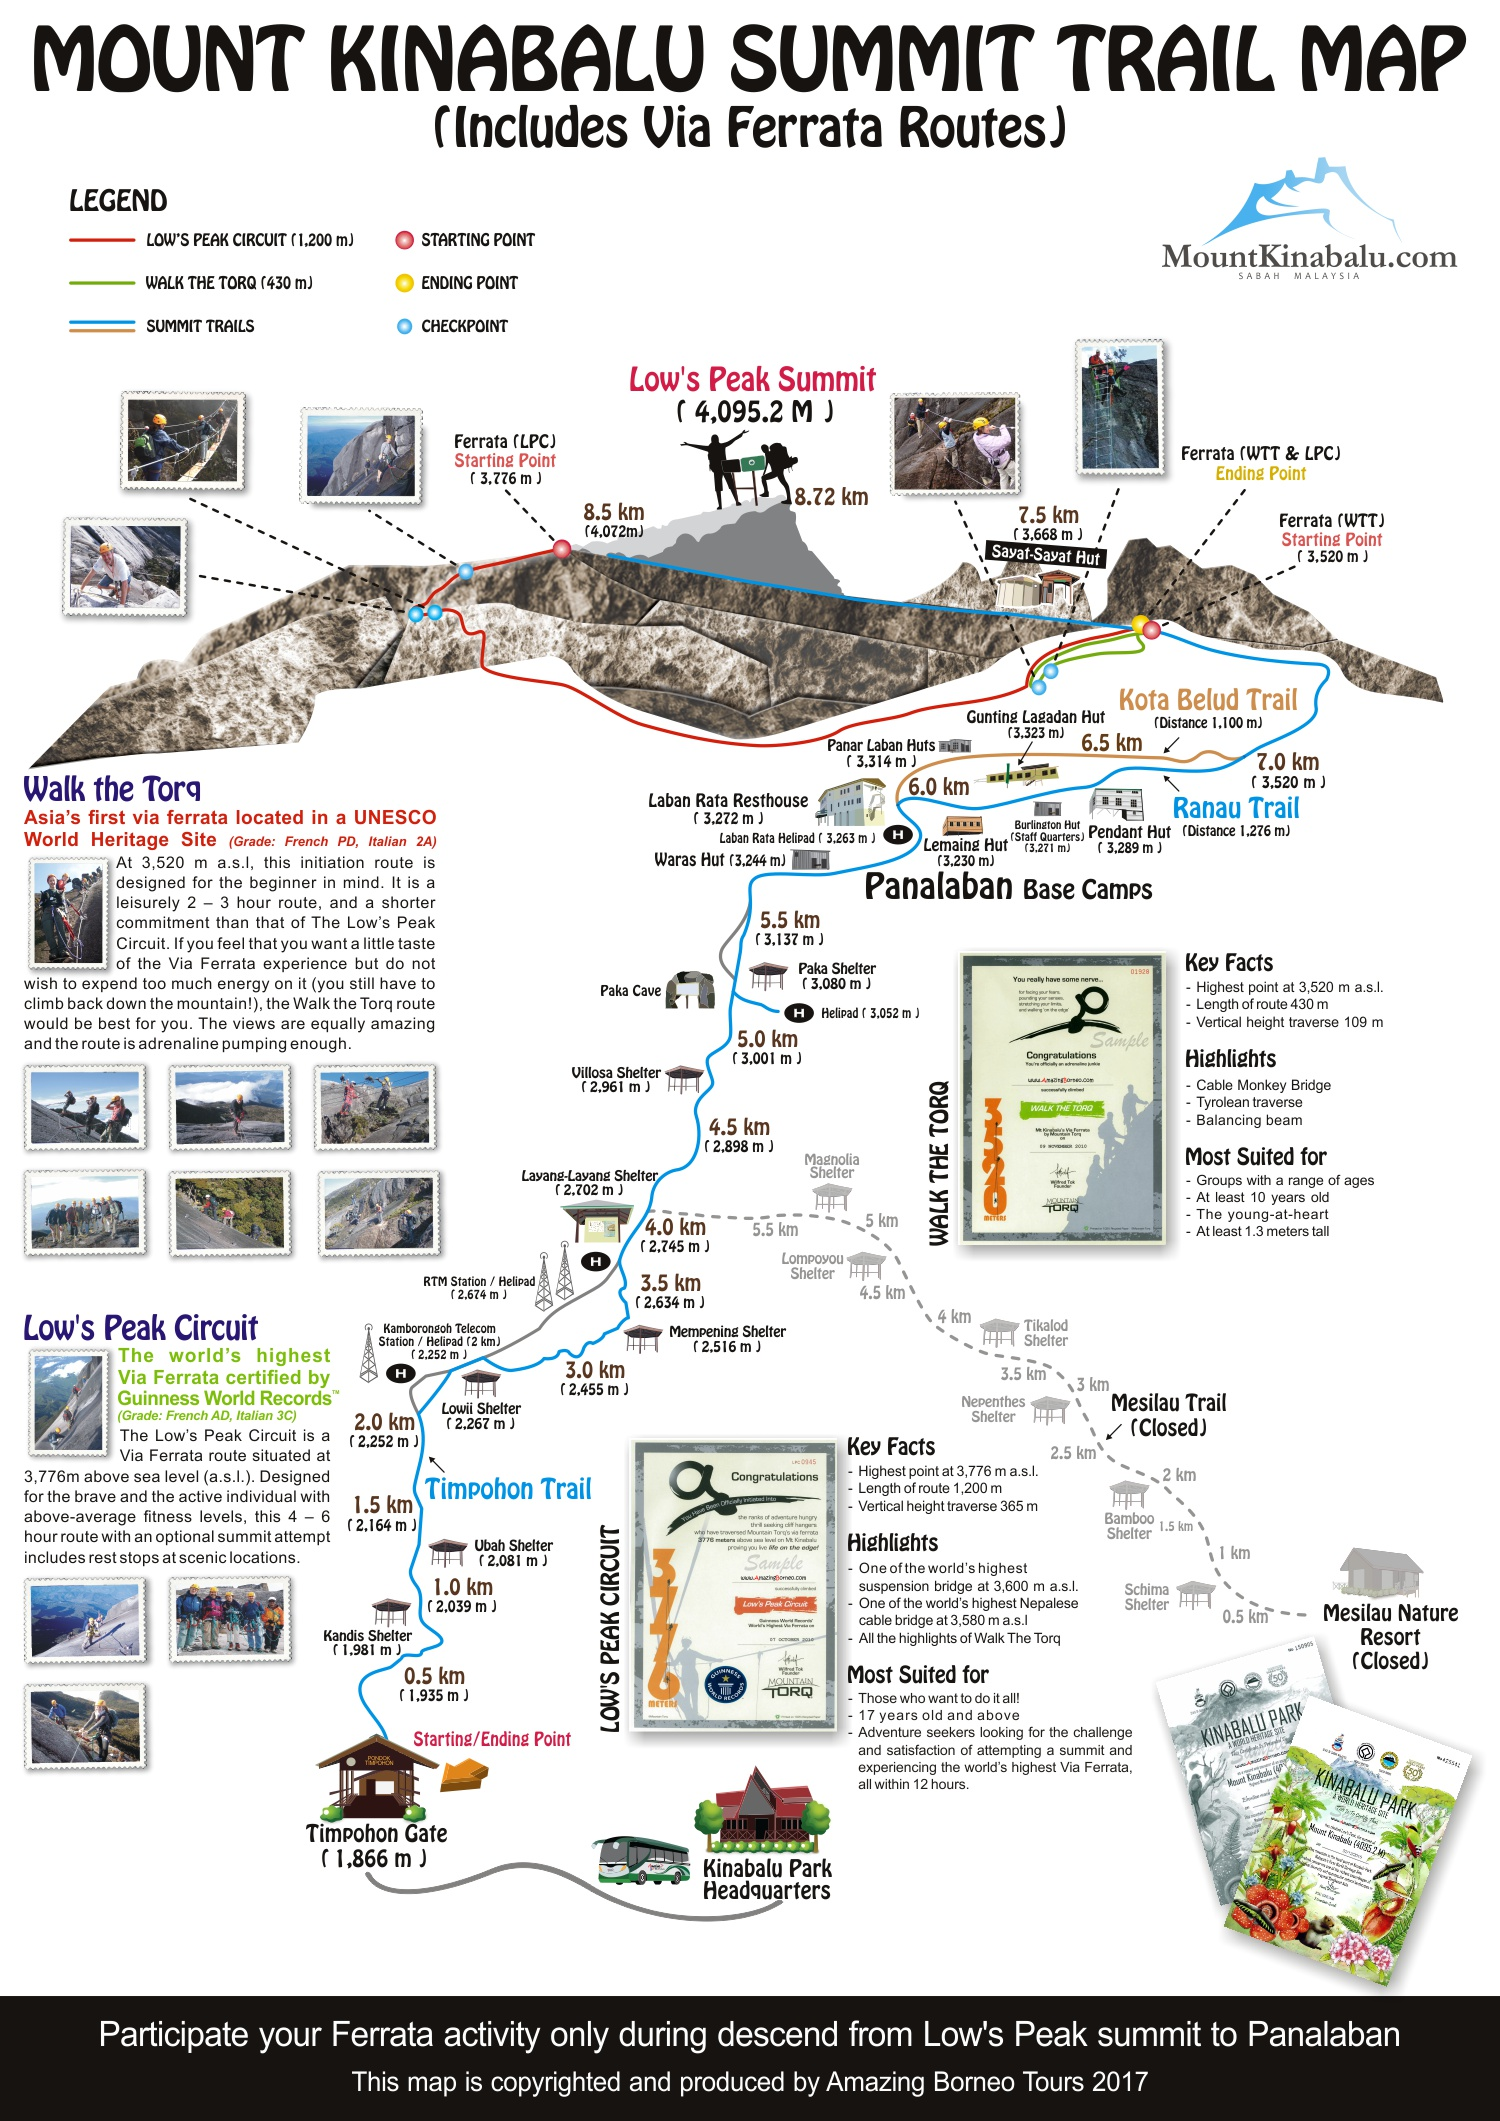 Mount Kinabalu Via Ferrata Summit Trail Map